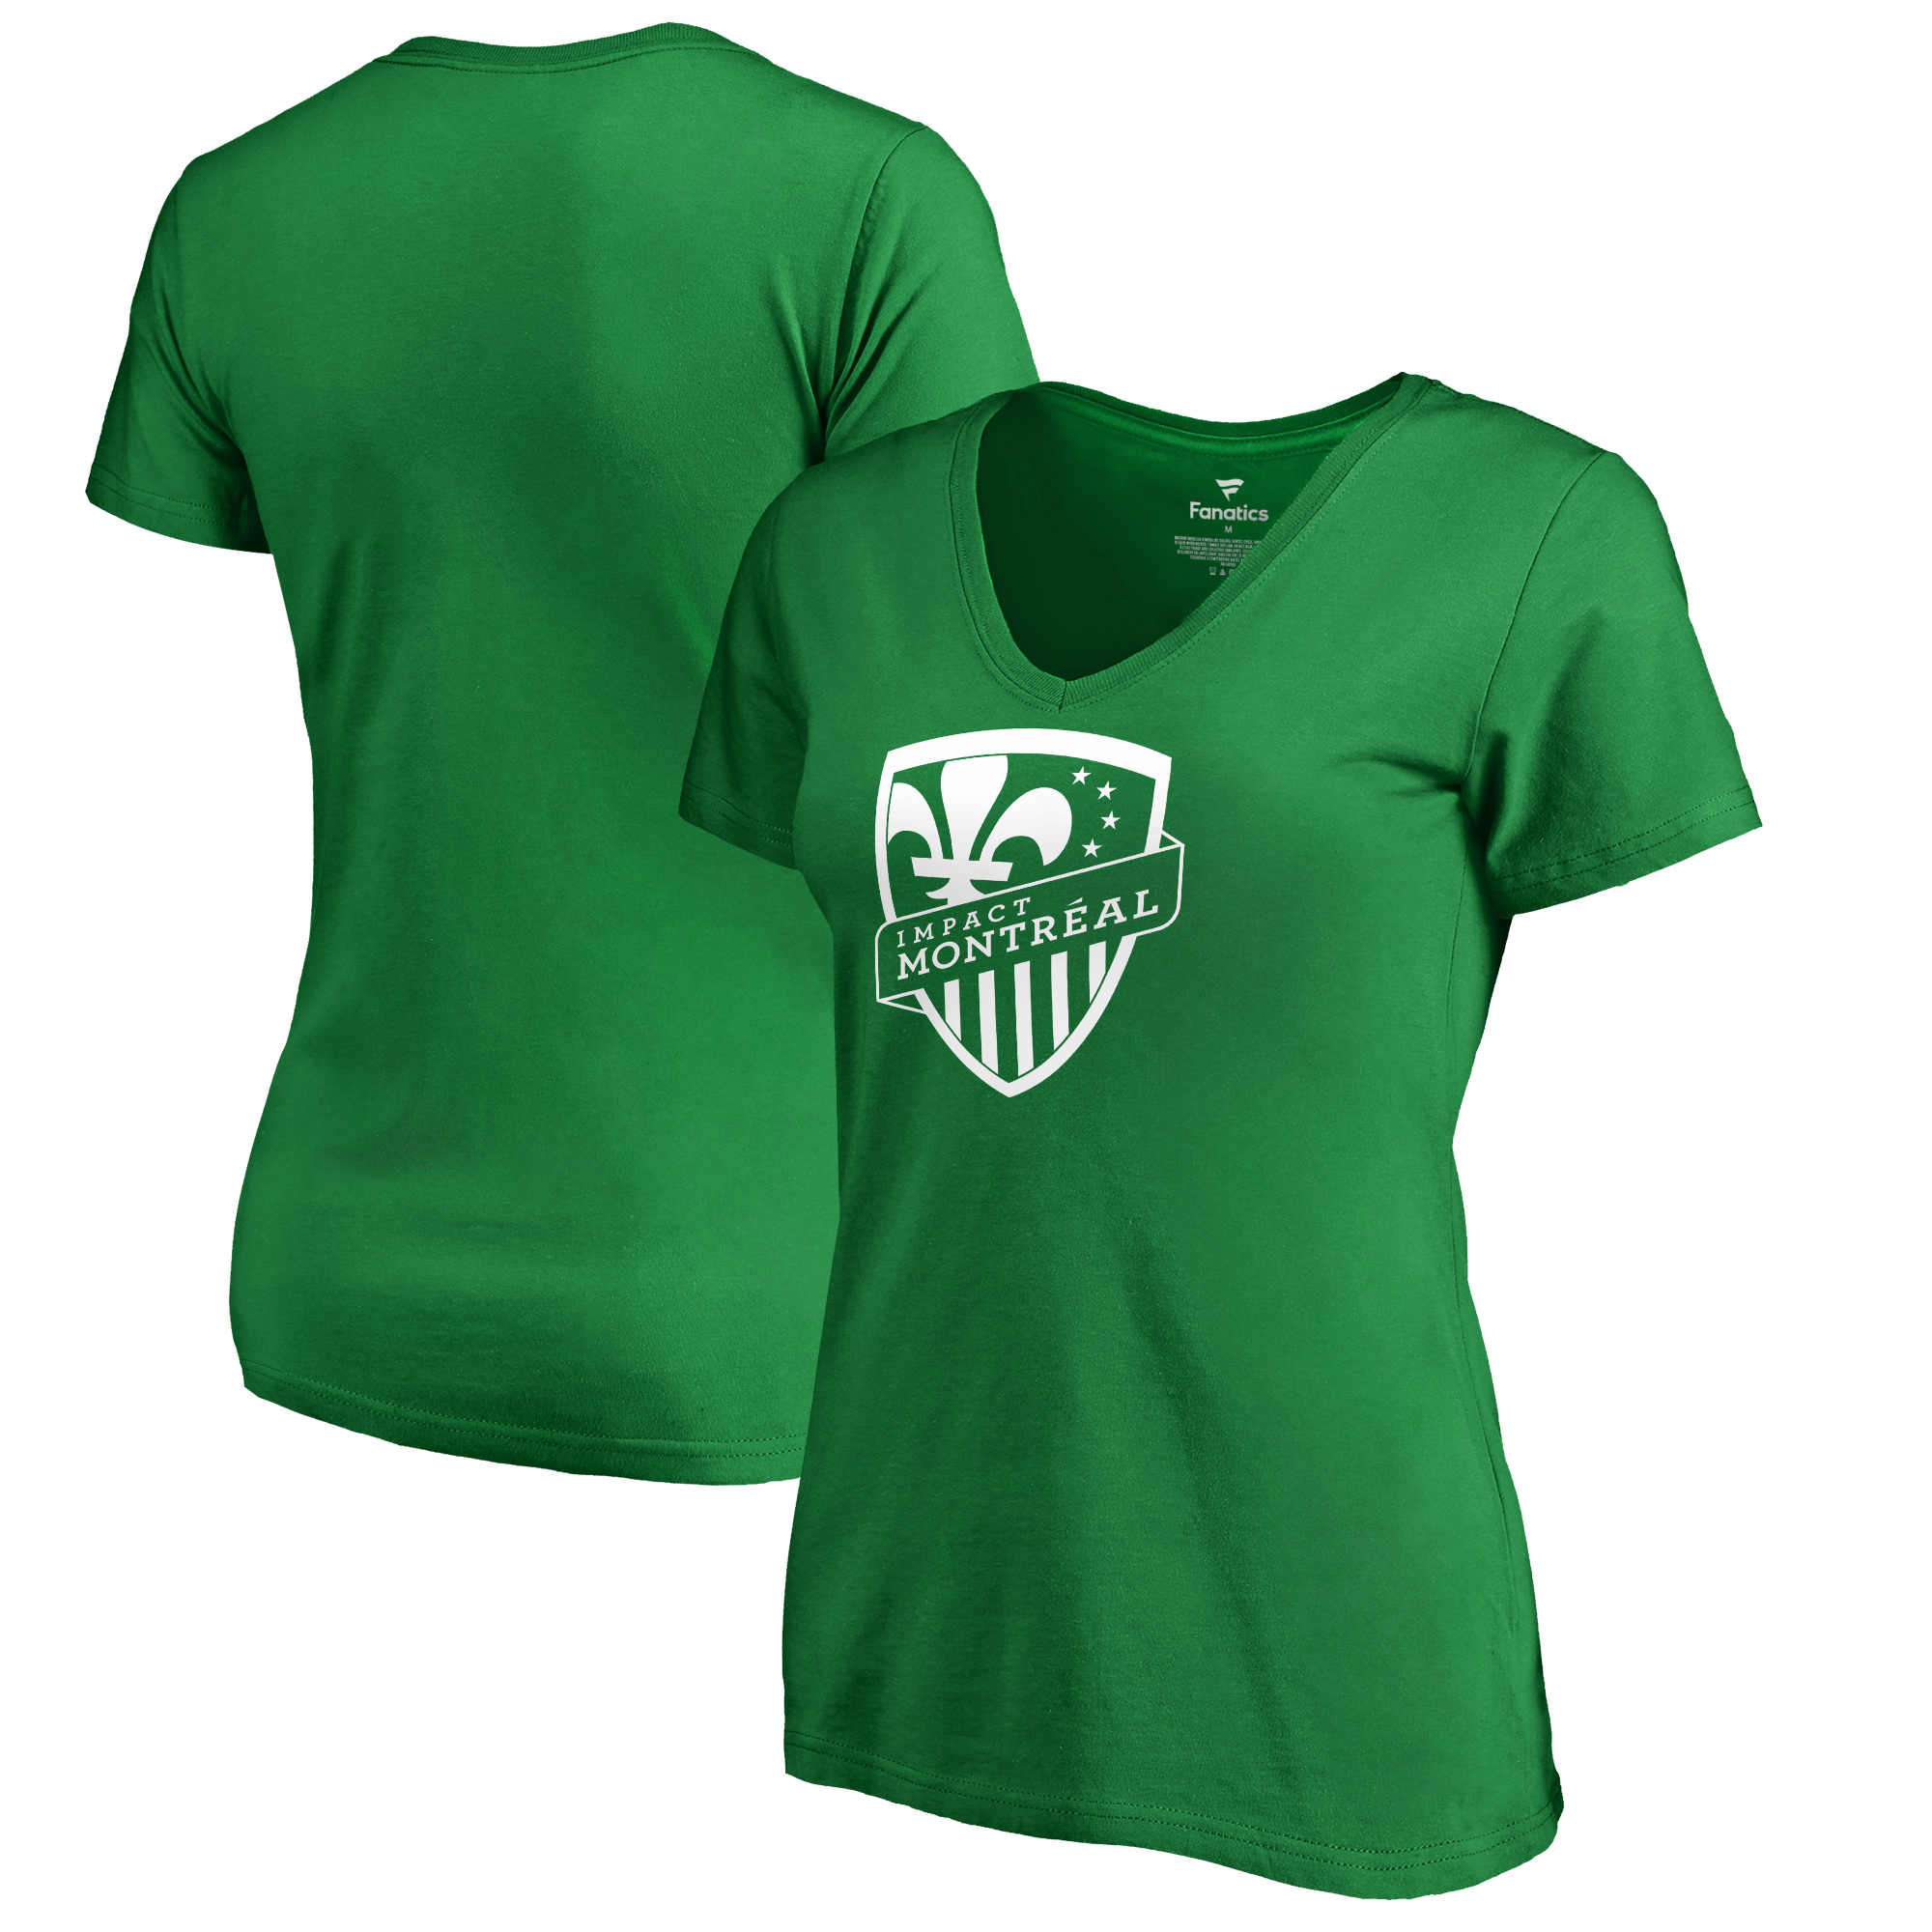 Montreal Impact Fanatics Branded Women's St. Patrick's Day White Logo V-Neck T-Shirt - Kelly Green